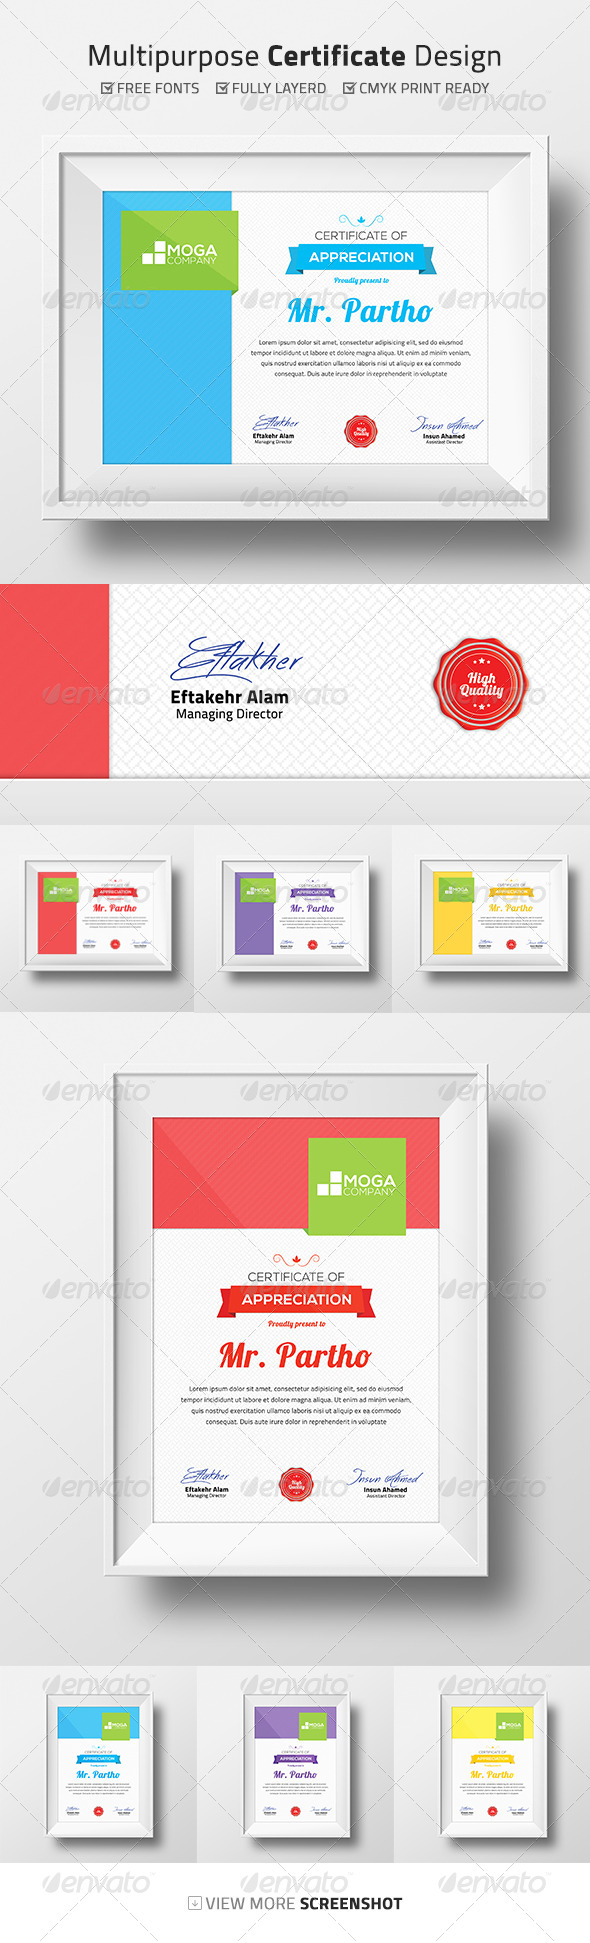 GraphicRiver Multipurpose Certificate Design 8722453